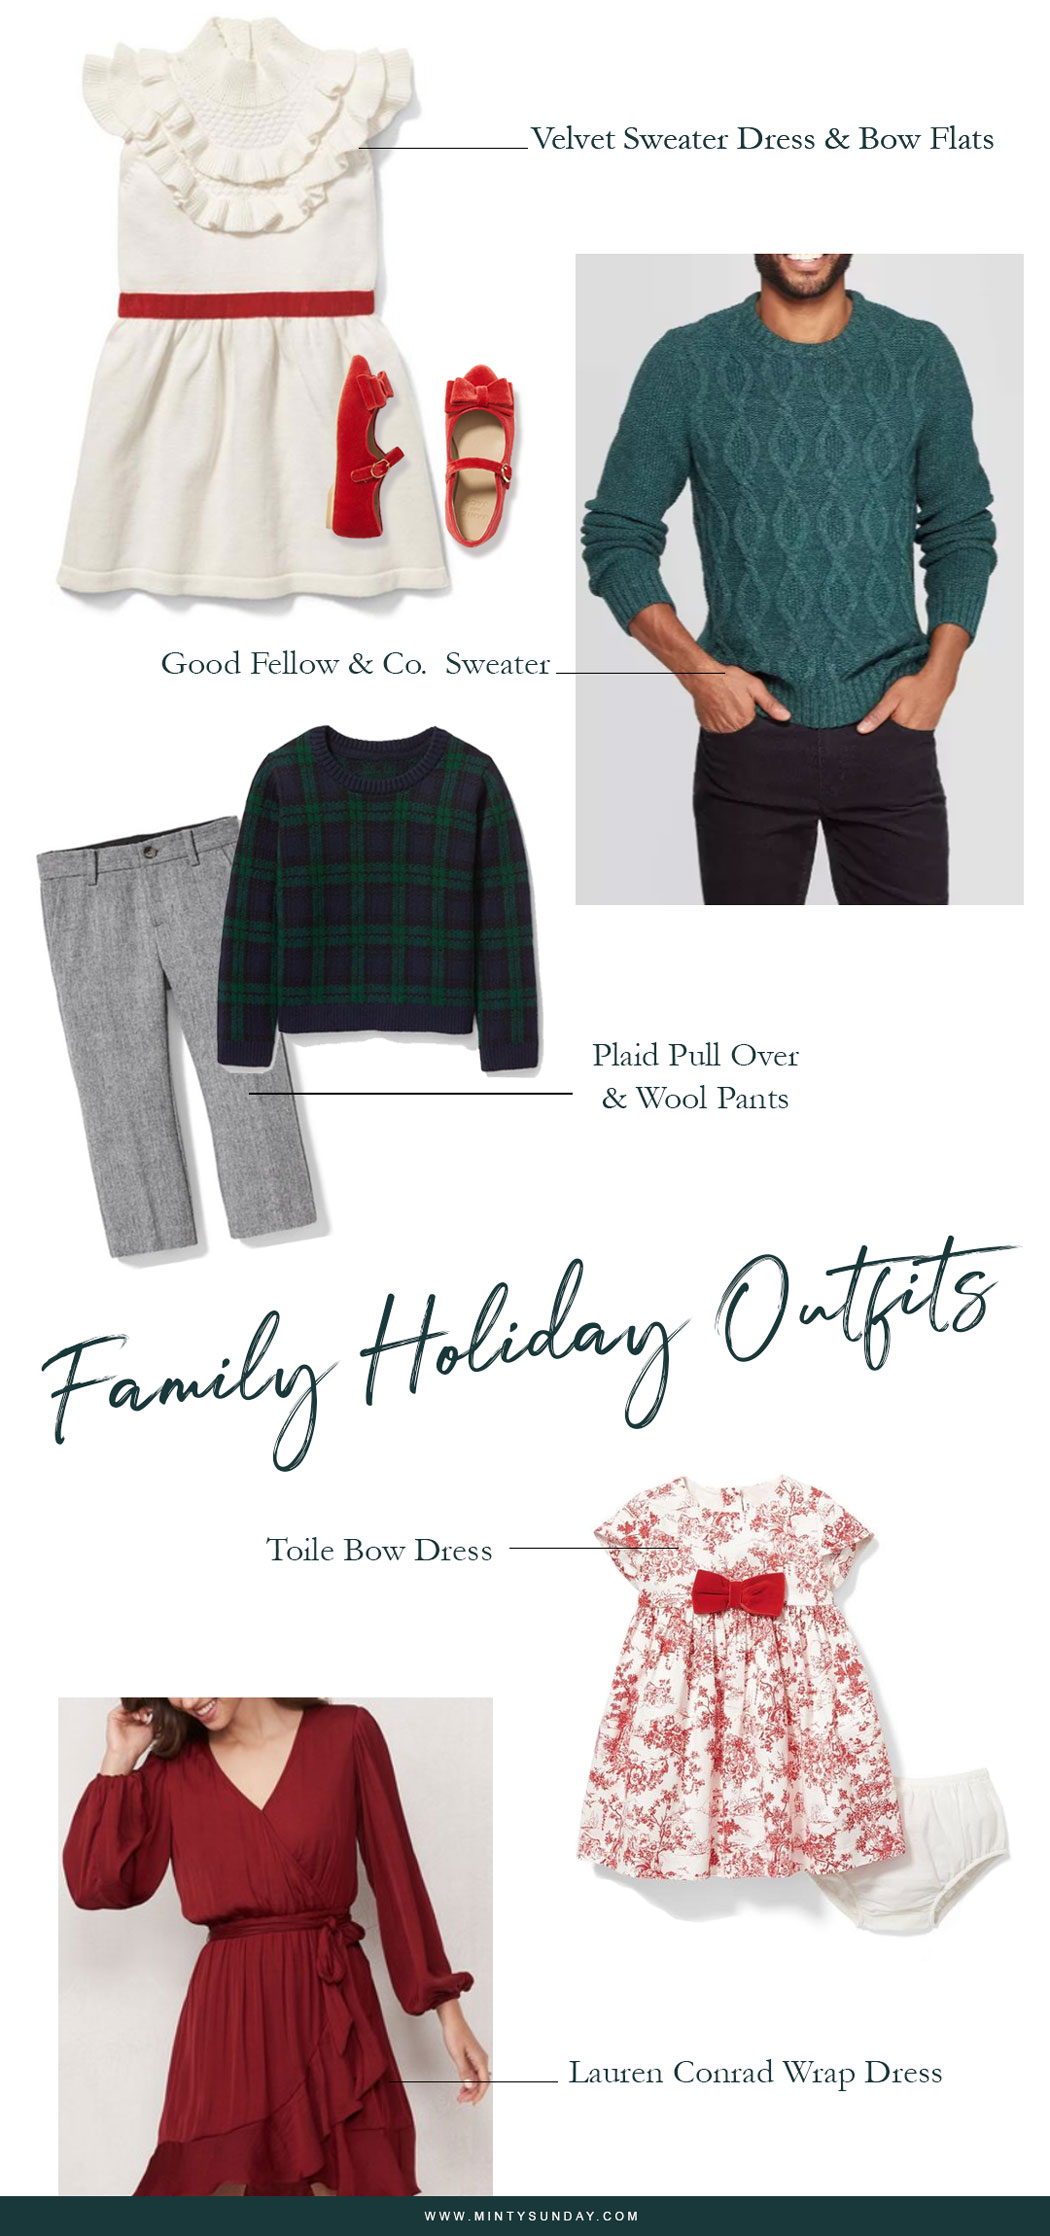 Coordinating Family Outfits for the holidays - How to easily create a coordinated family outfits for photos planned or spontaneous! (mintysunday.com) #mommyandme #familyoutfits #holidayphotos